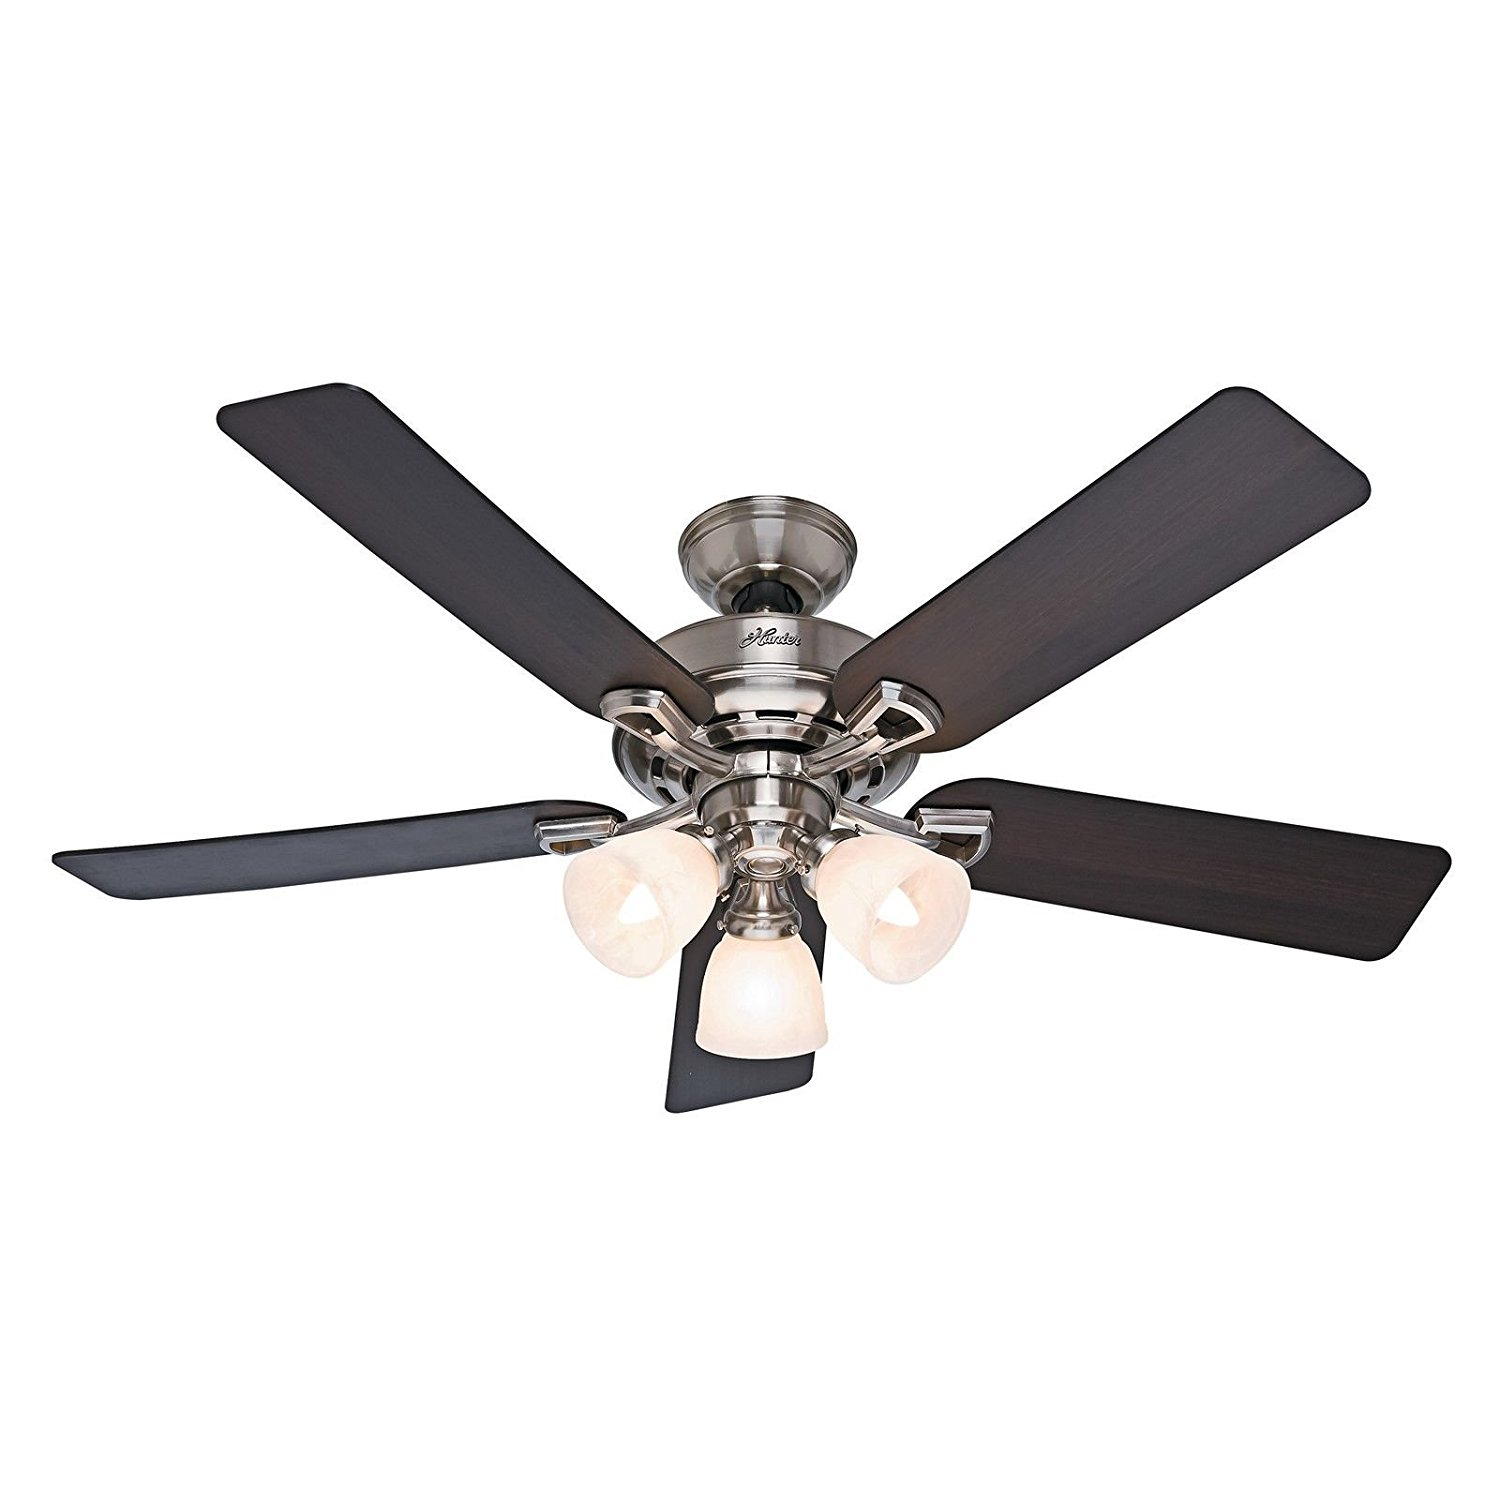 "Hunter Fan 52"" Ceiling Fan, Brushed Nickel - Light Kit and Remote Control Included (Certified Refurbished)"